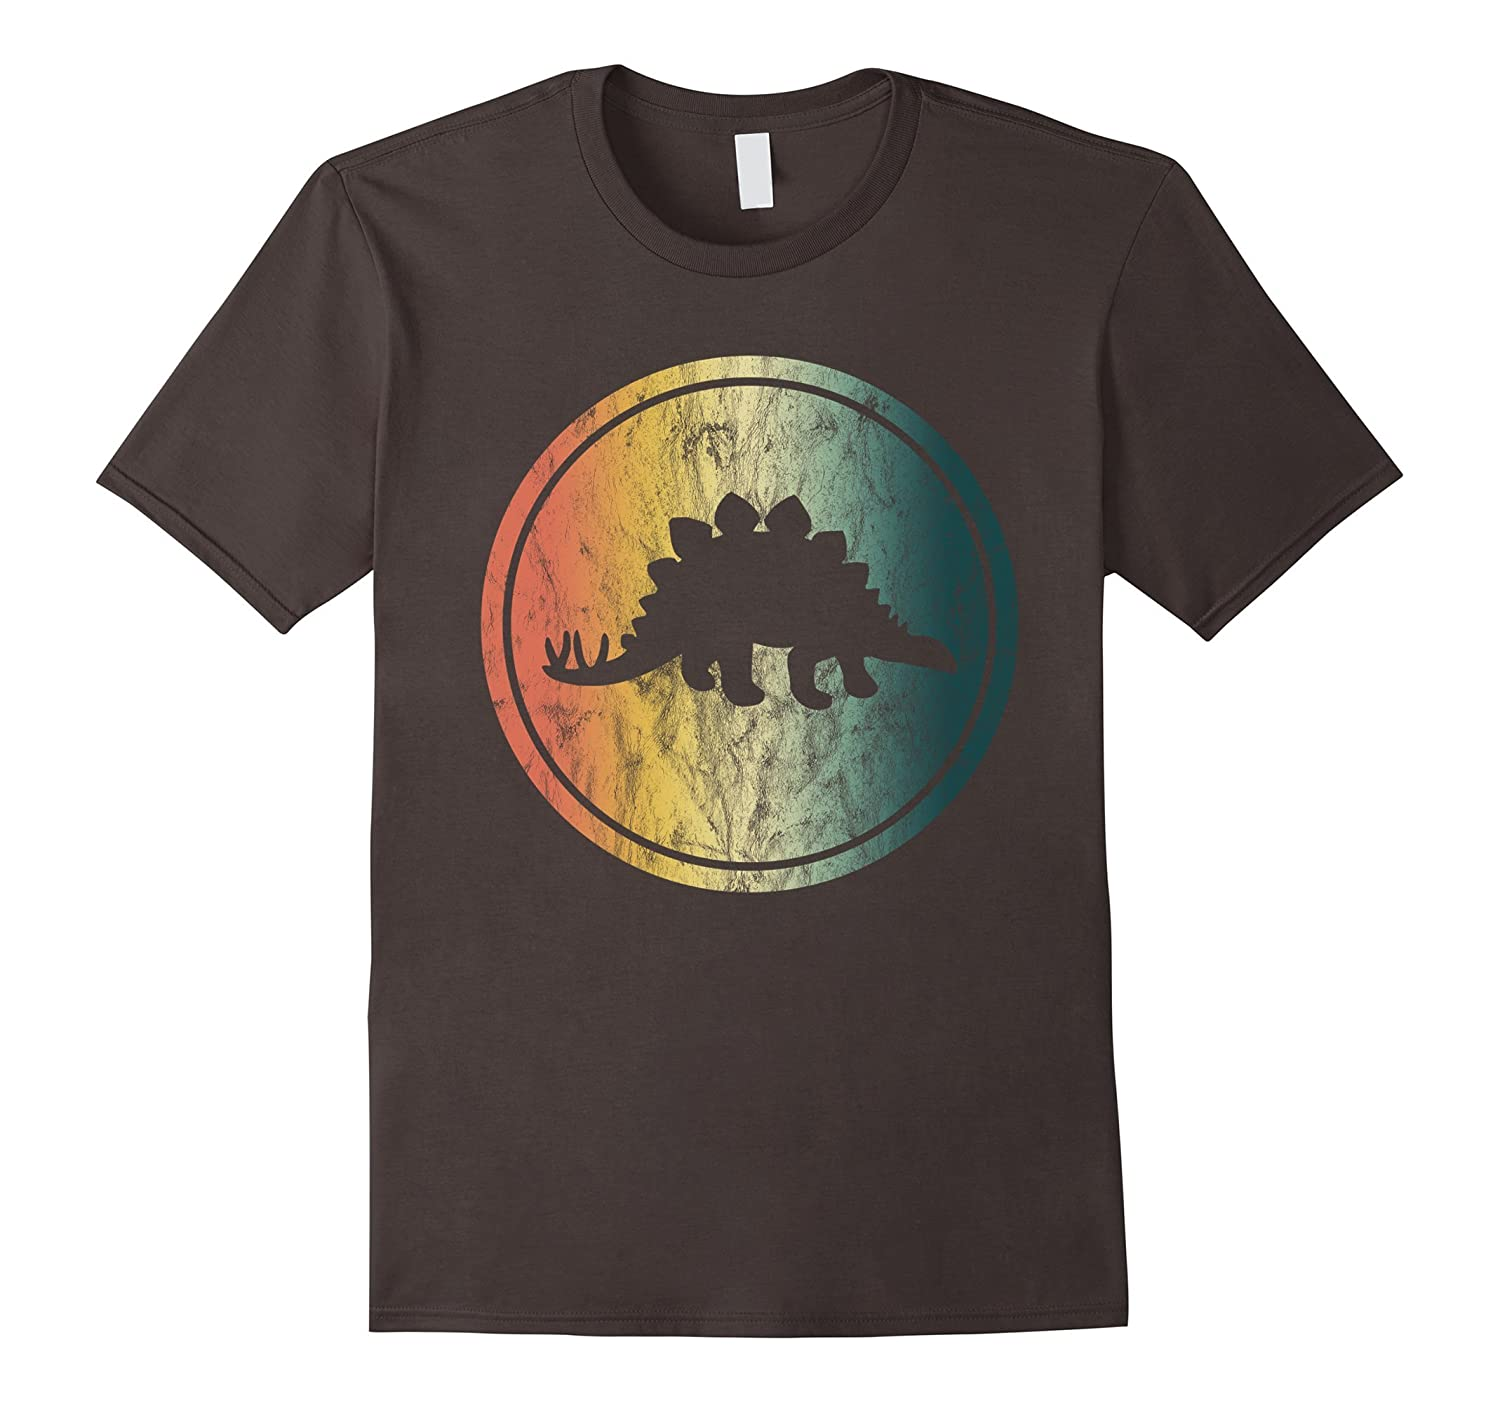 STEGOSAURUS DINOSAUR T-Shirt Distressed Vintage Retro Design-ANZ